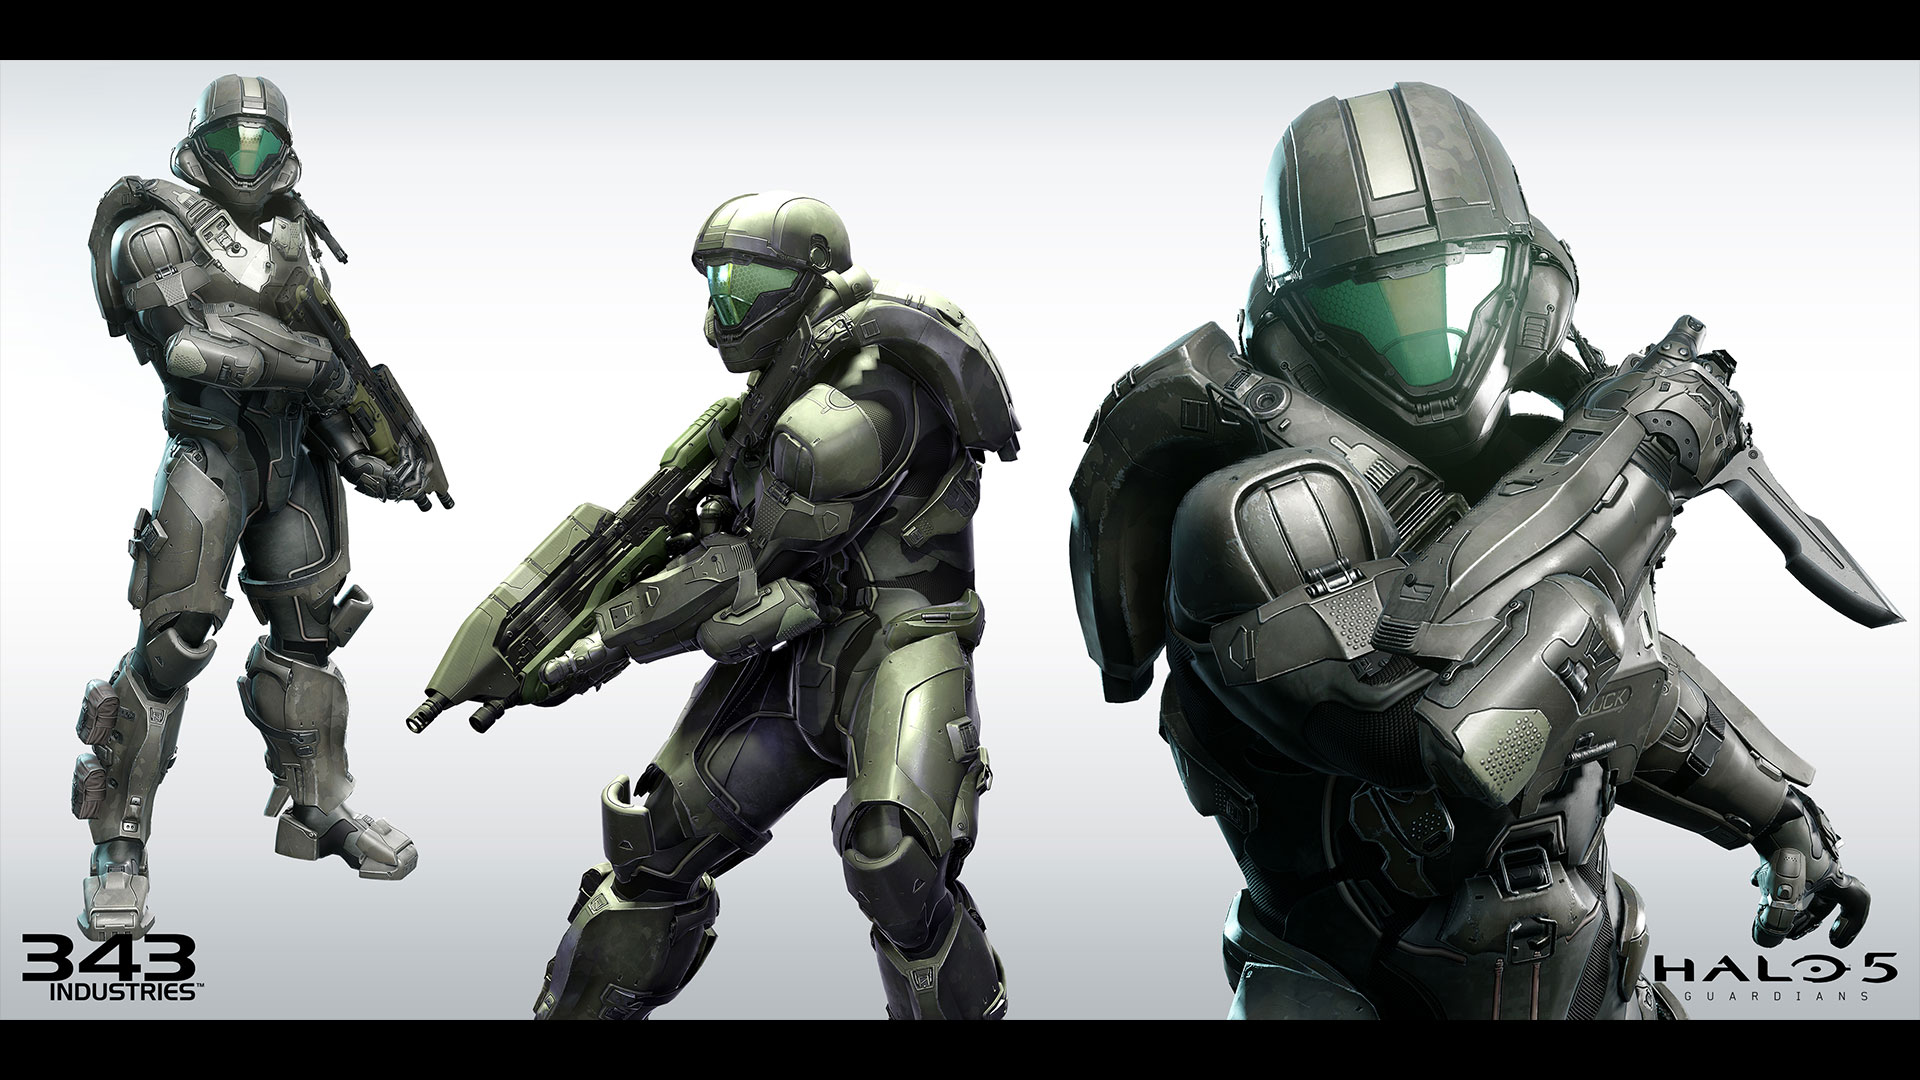 Image h5g render buck 3viewg halo nation fandom powered by h5g render buck 3viewg publicscrutiny Image collections